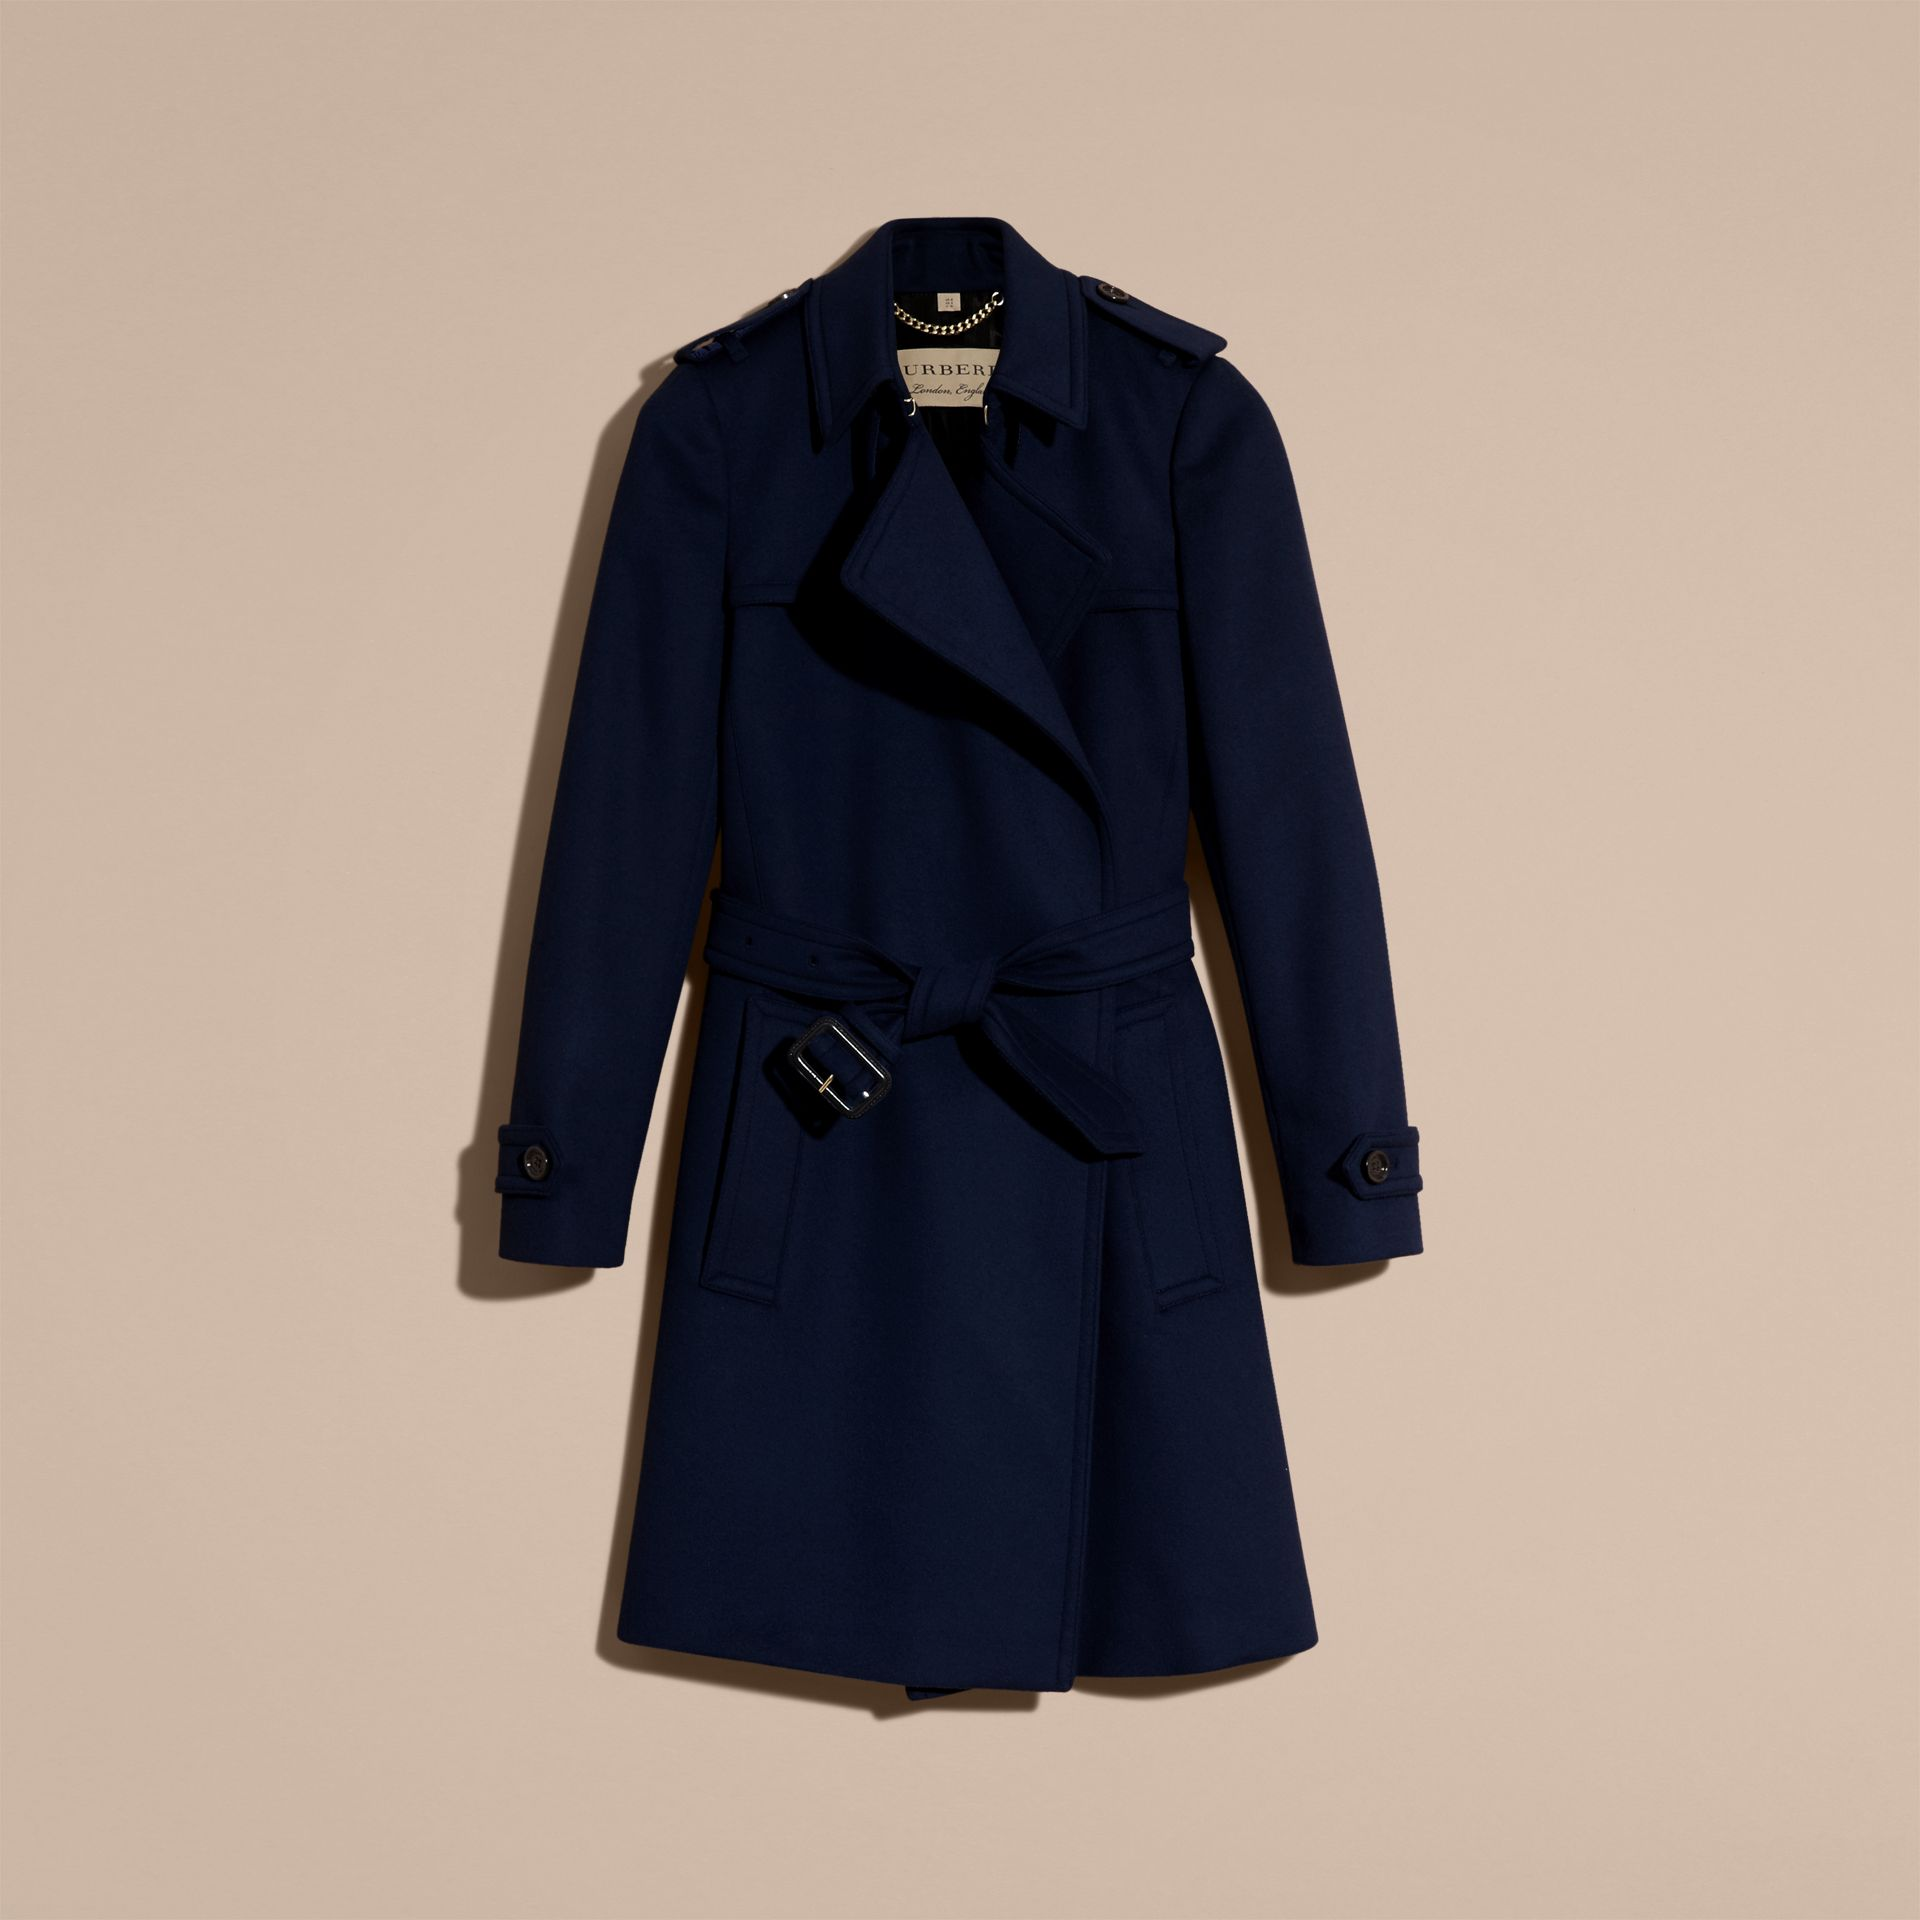 Empire blue Wool Cashmere Wrap Trench Coat - gallery image 4